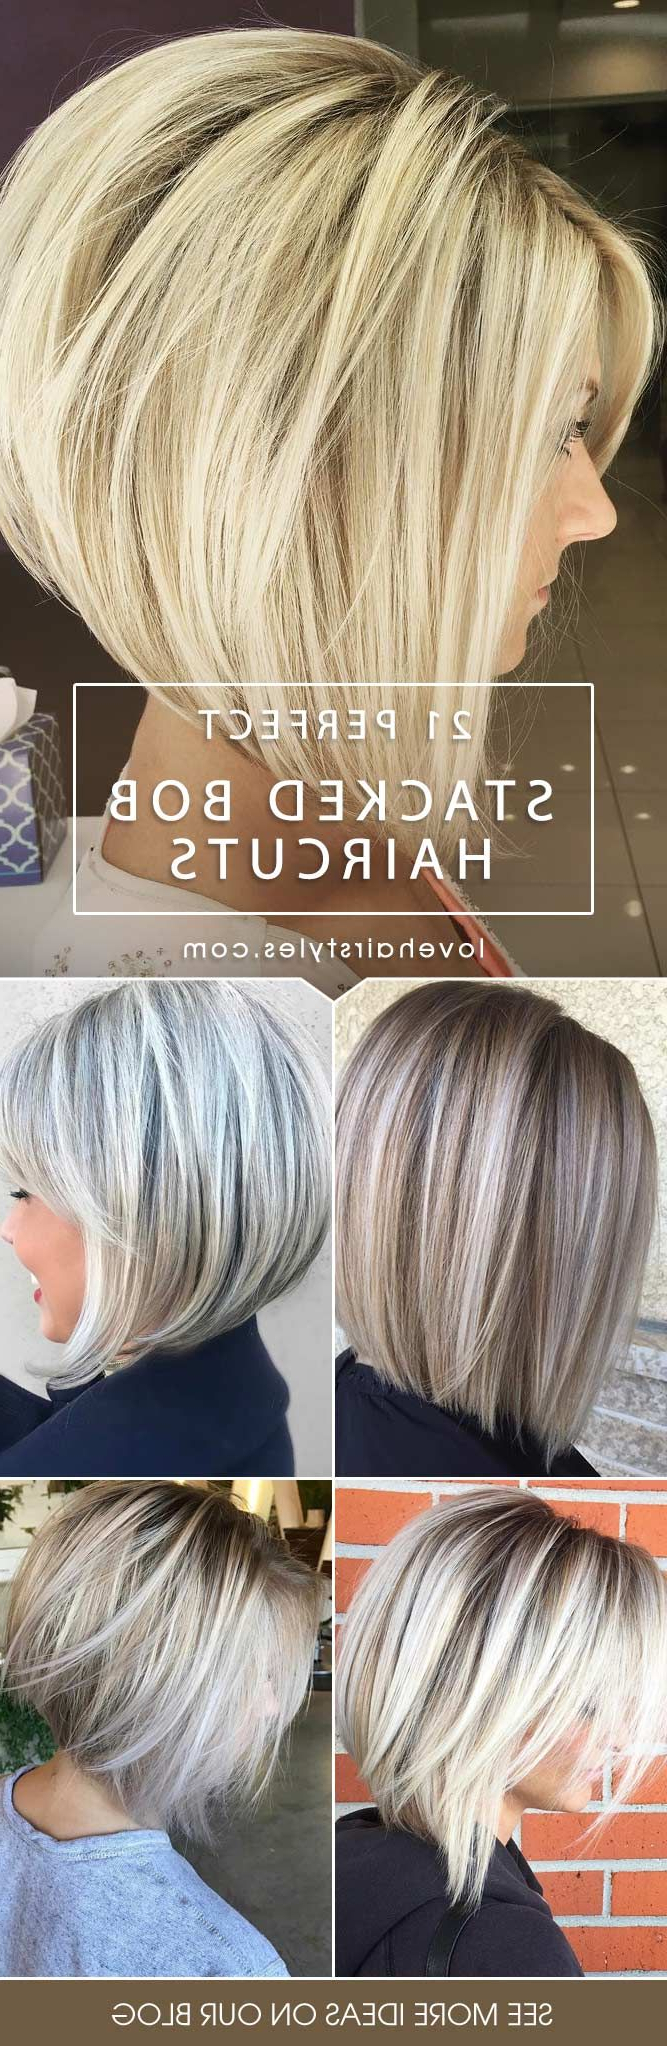 48 Fantastic Stacked Bob Haircut Ideas | Beauty | Pinterest | Hair For Sassy And Stacked Hairstyles (View 6 of 20)